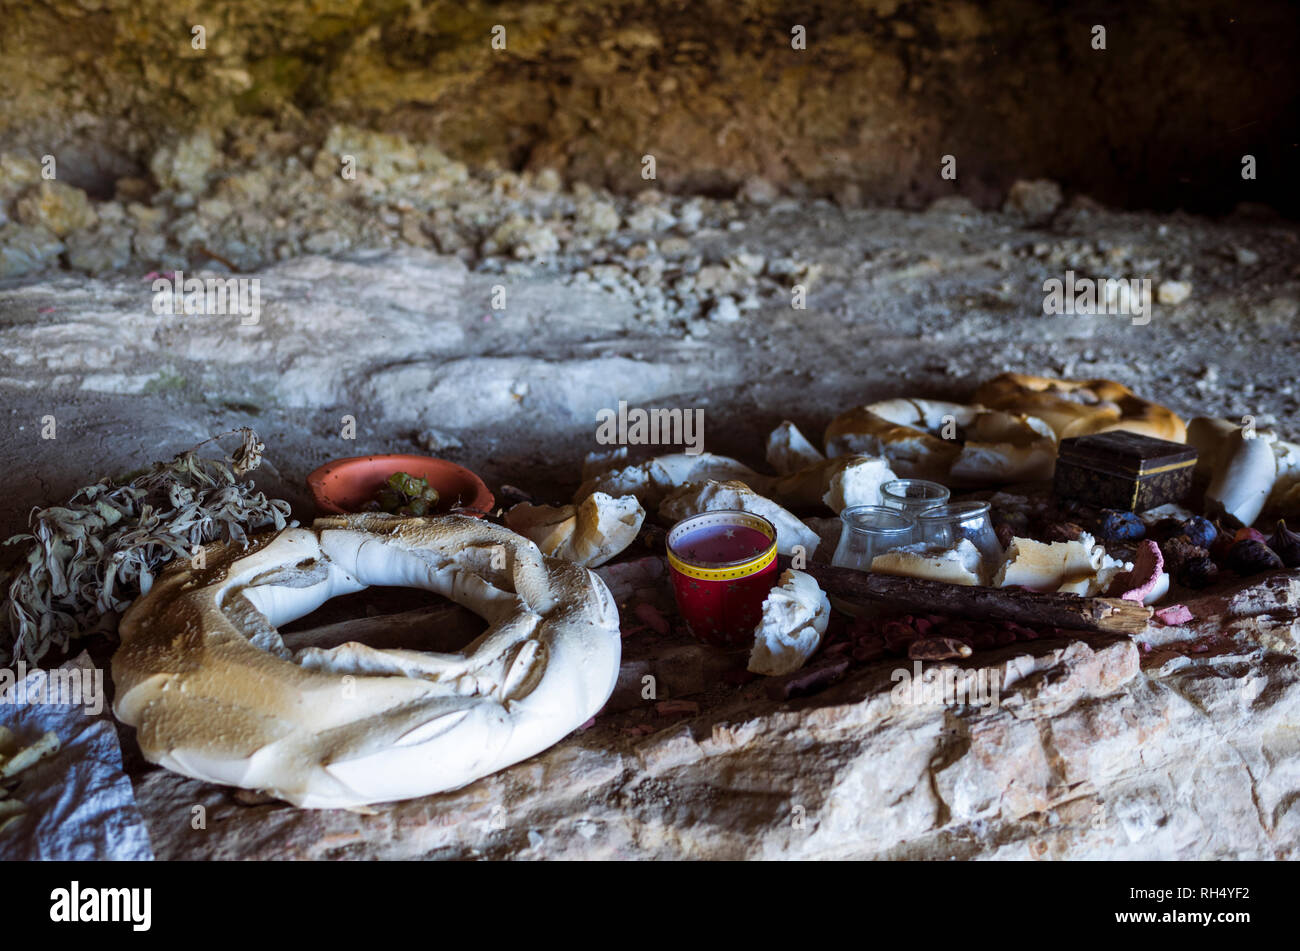 Castellar, Jaen province, Andalusia, Spain : Food offerings during the annual romeria to the IV century BC Iberian cave santuary known as Cueva de la  - Stock Image